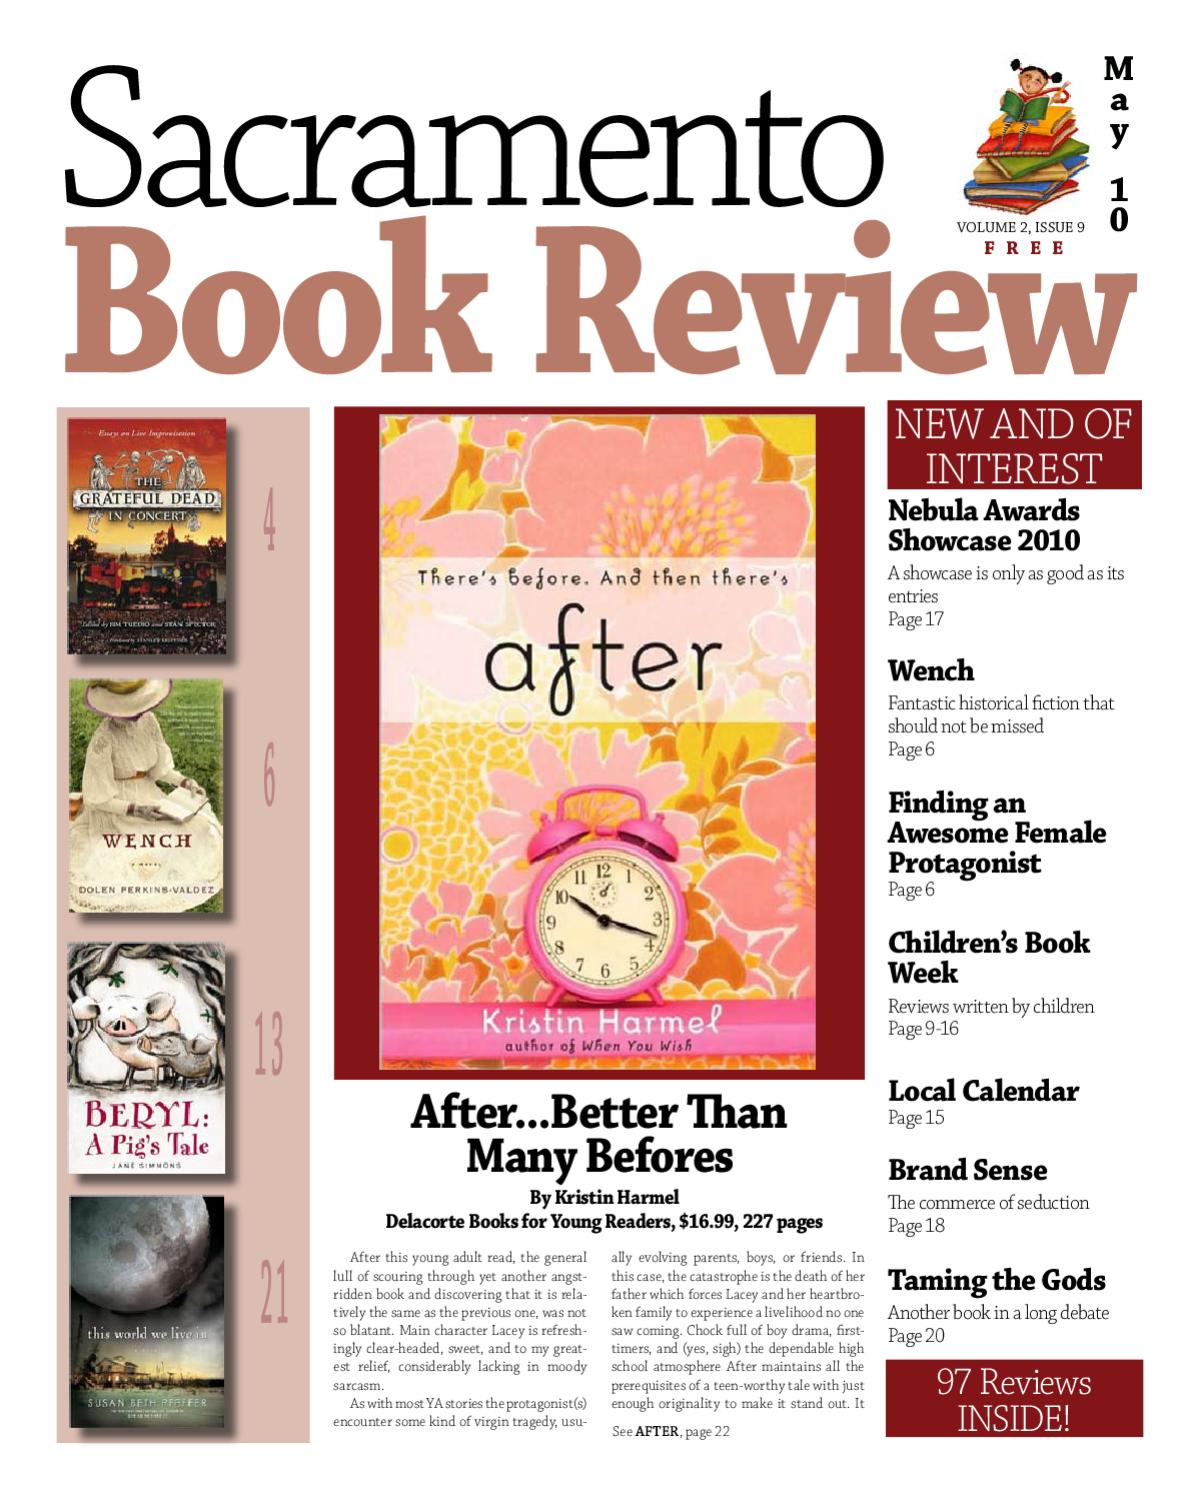 Sacramento Book Review May 2010 By City Book Review Publishers